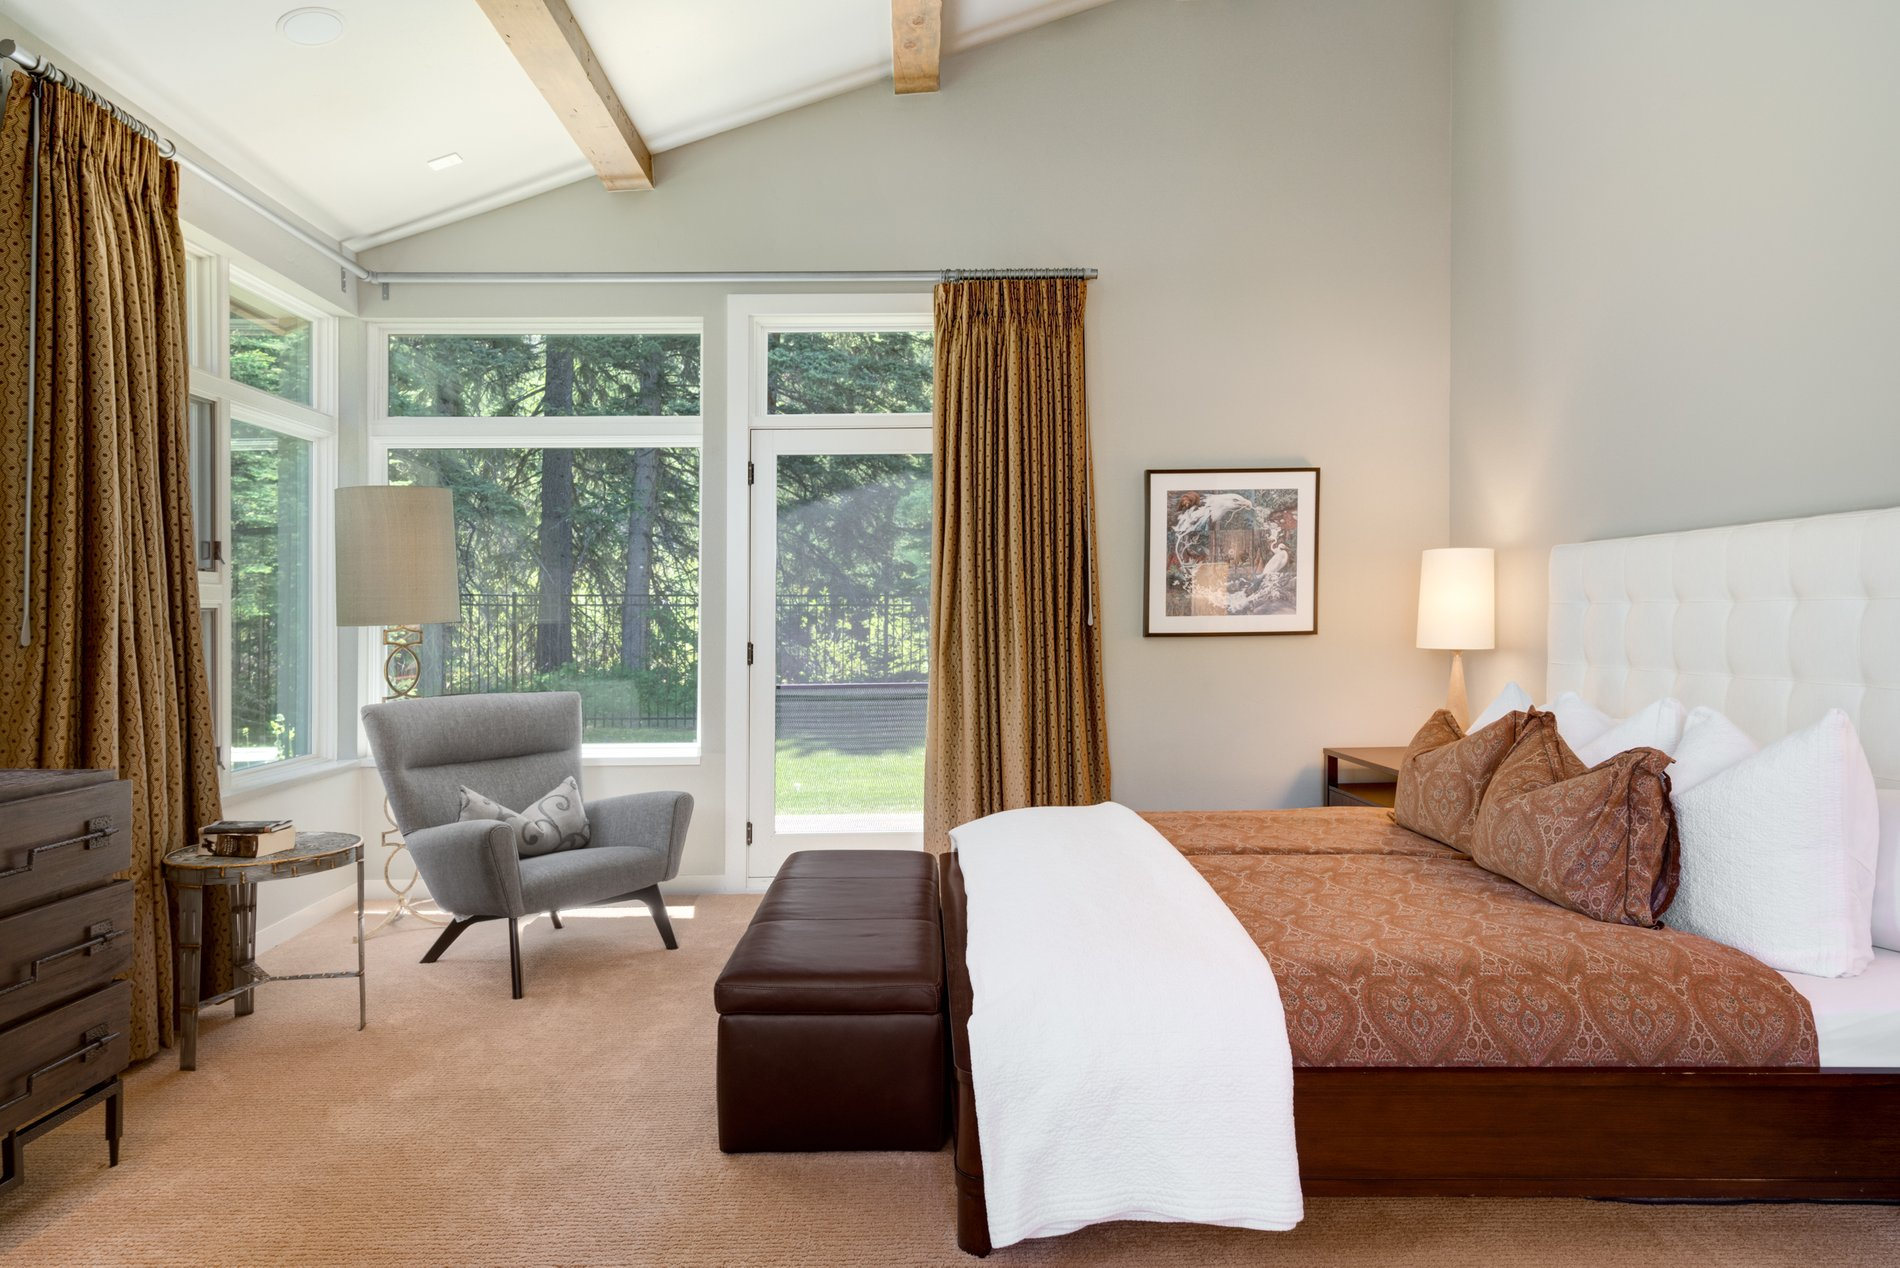 Guest bedroom featuring a vaulted ceiling with exposed timber beams. Walk out to the patio area.